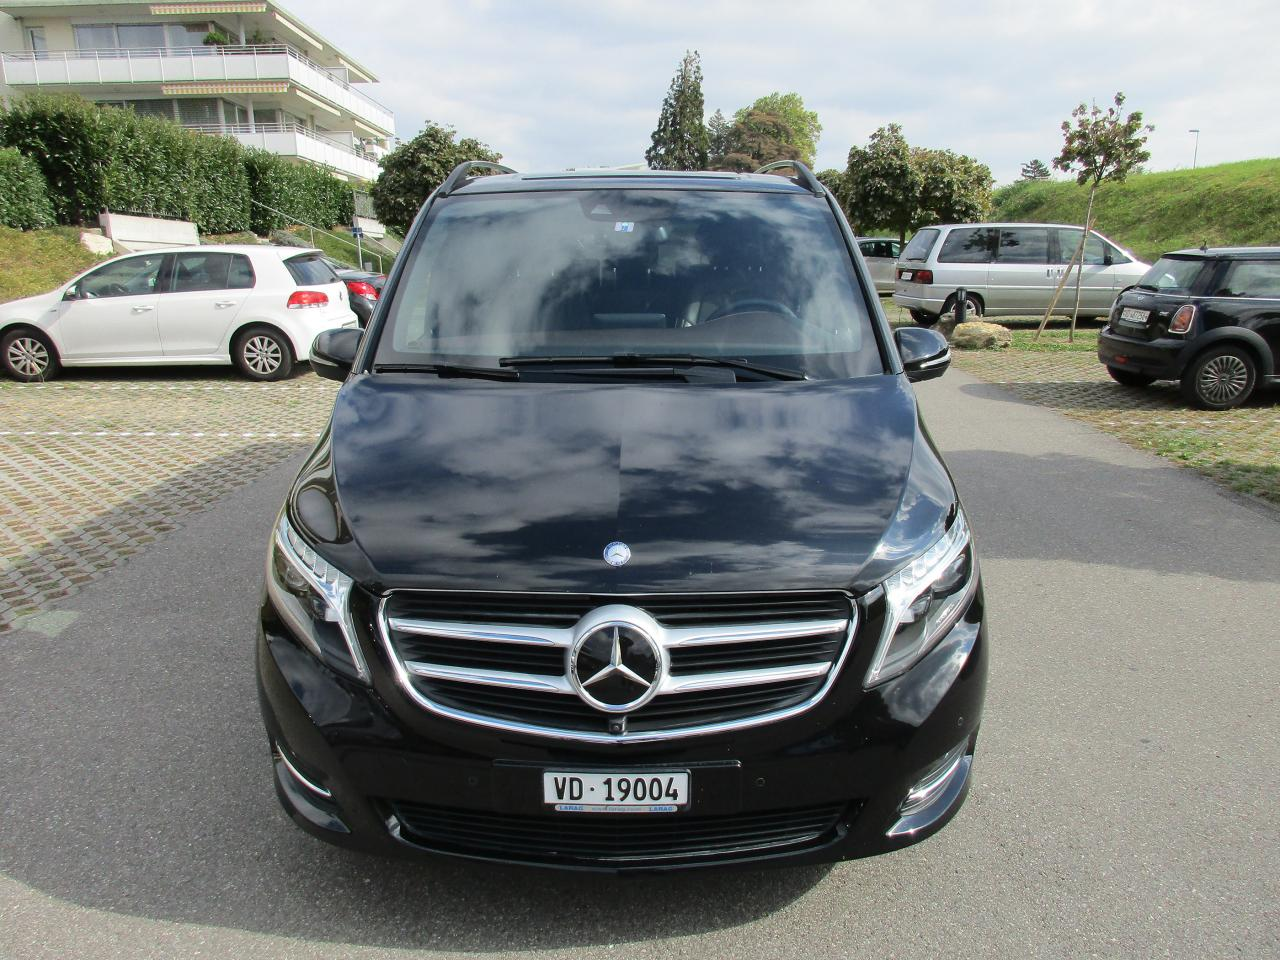 Mercedes V-Classe 7 places